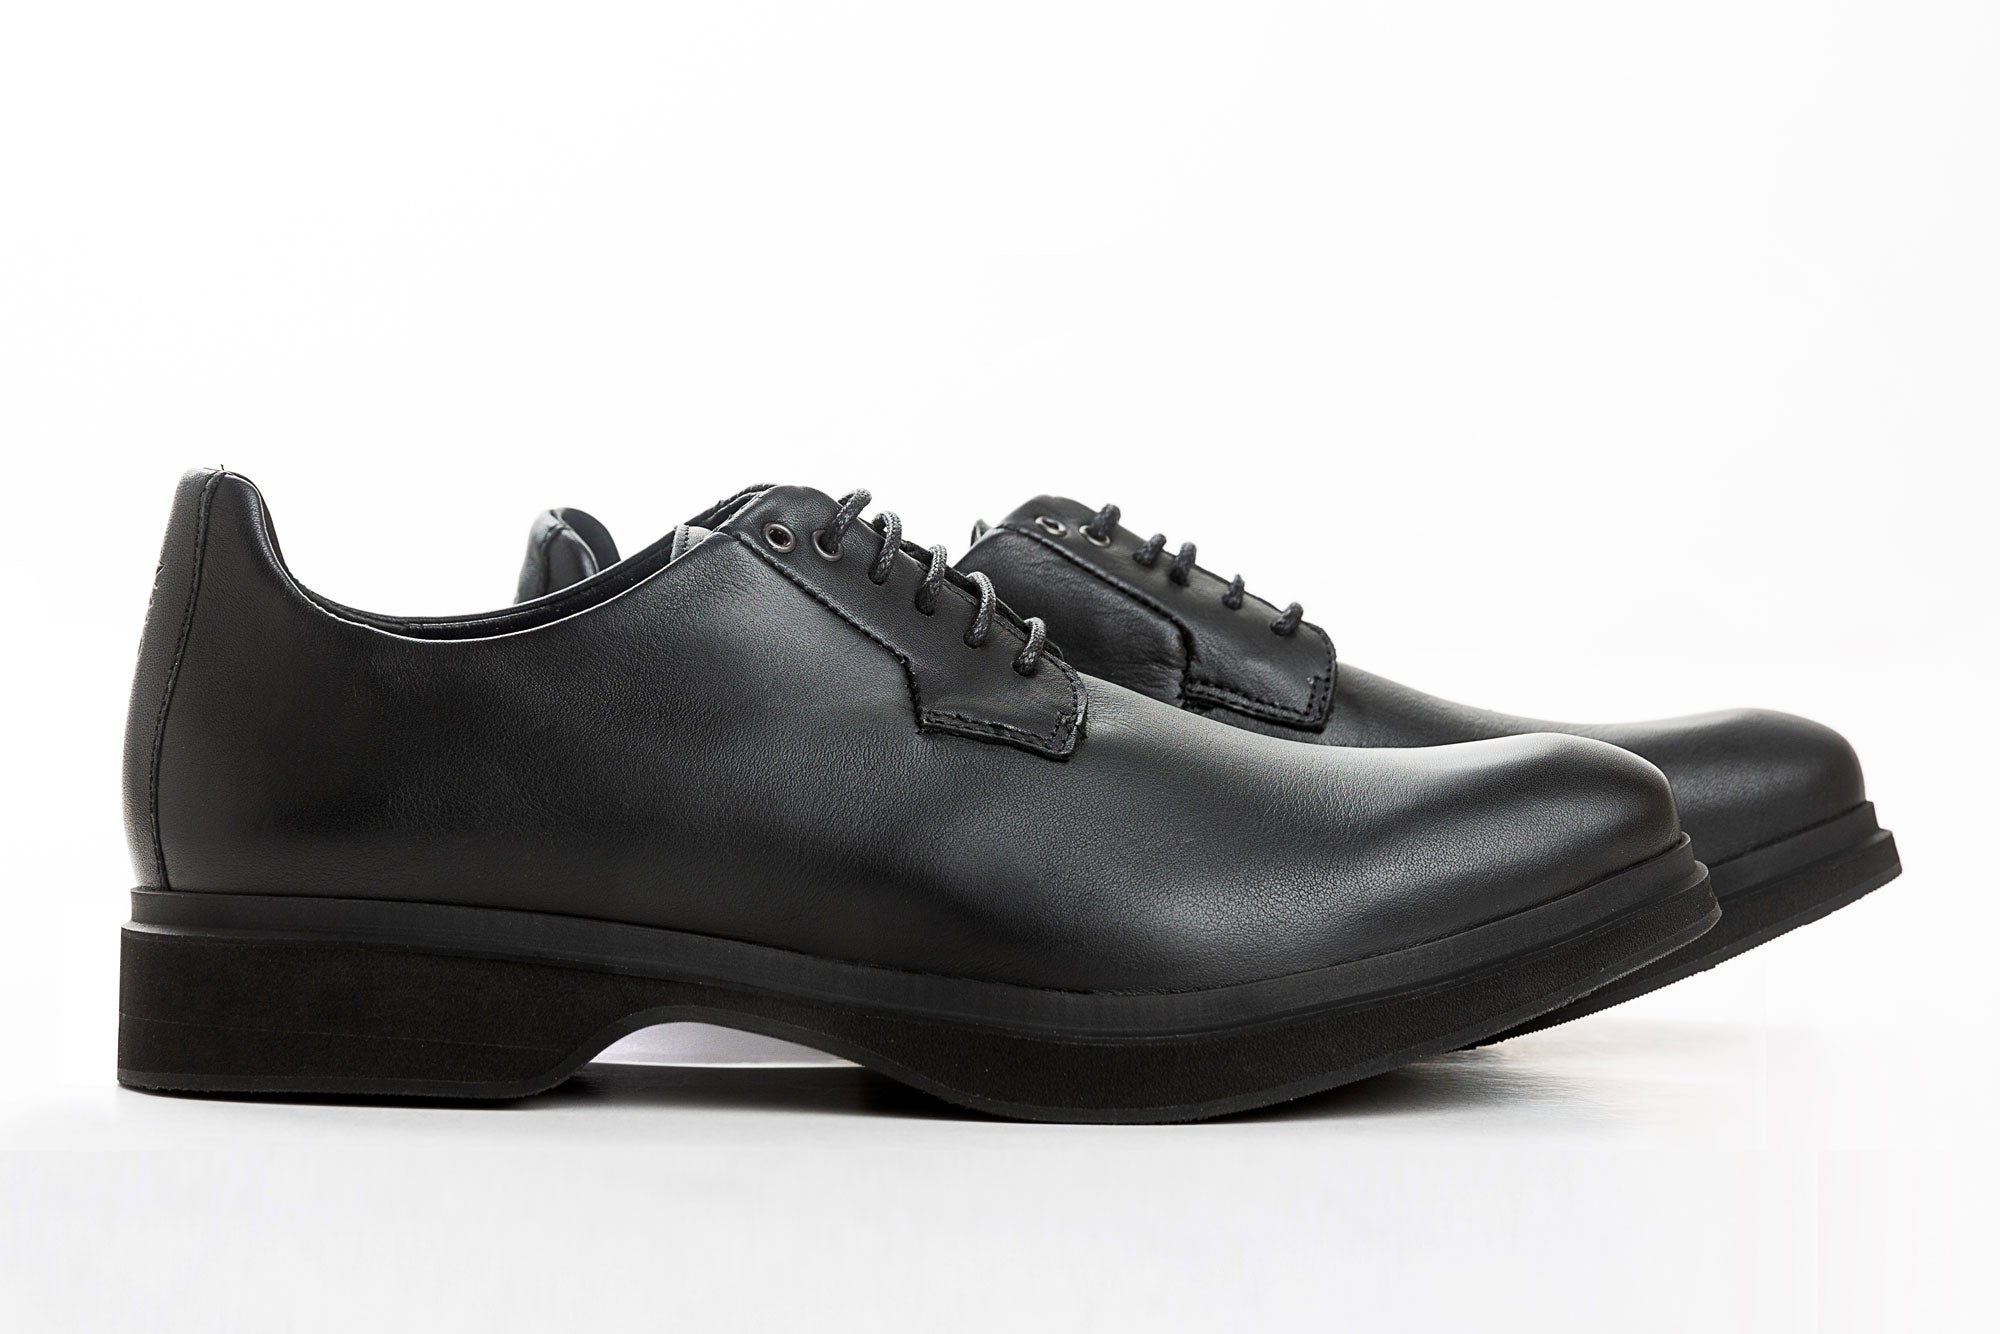 MARATOWN - Most Cushioned Dress Shoes